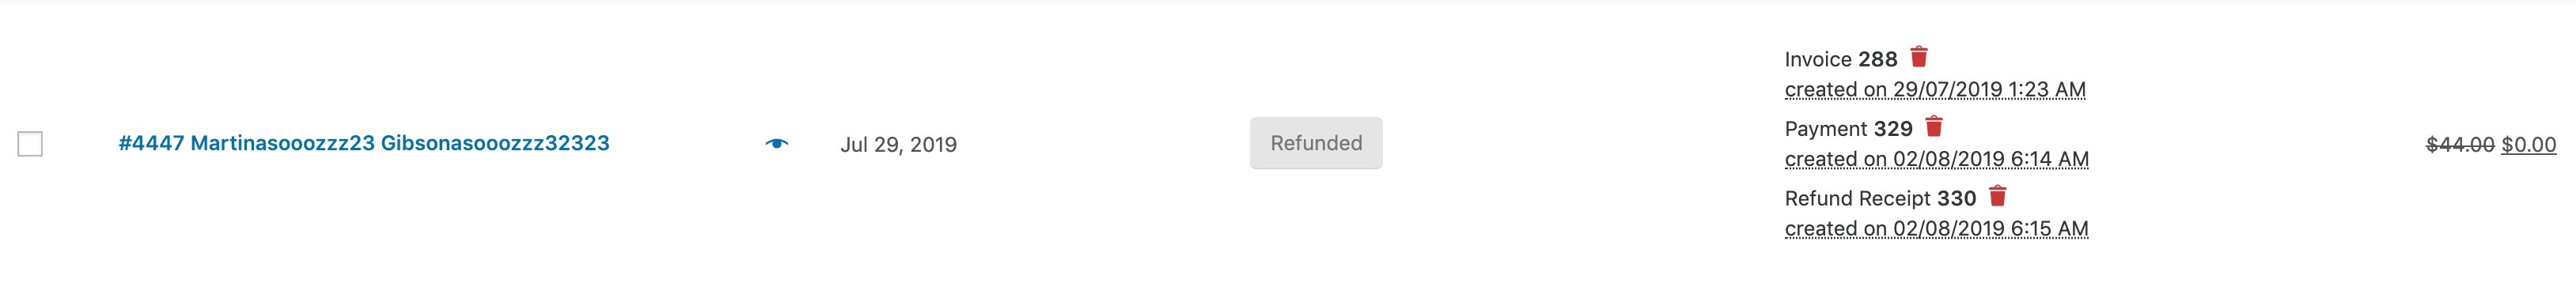 refund receipts